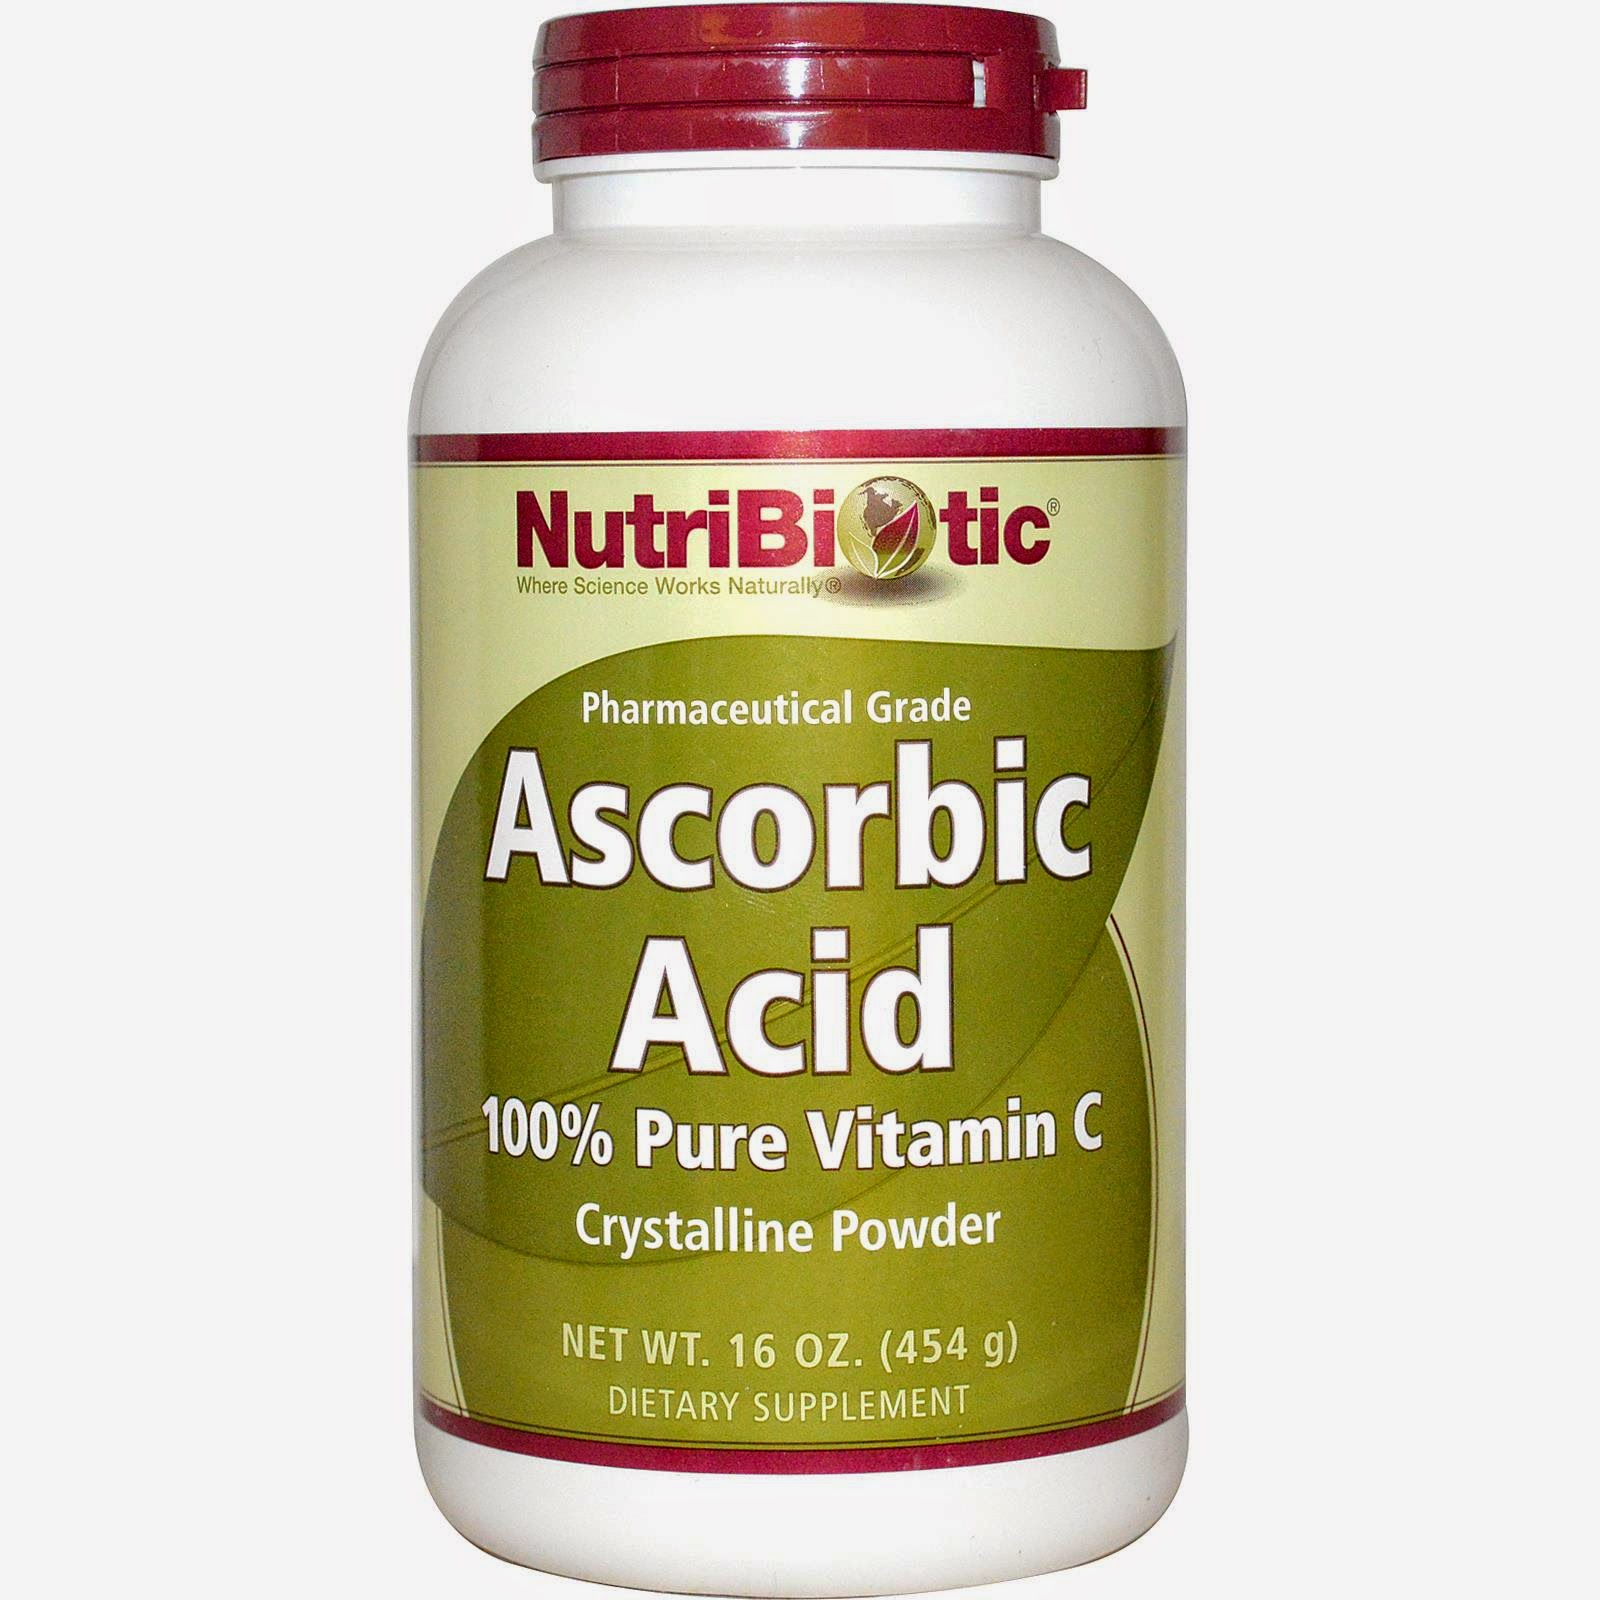 http://www.iherb.com/nutribiotic-ascorbic-acid-crystalline-powder-16-oz-454-g/24191?rcode=dbg731